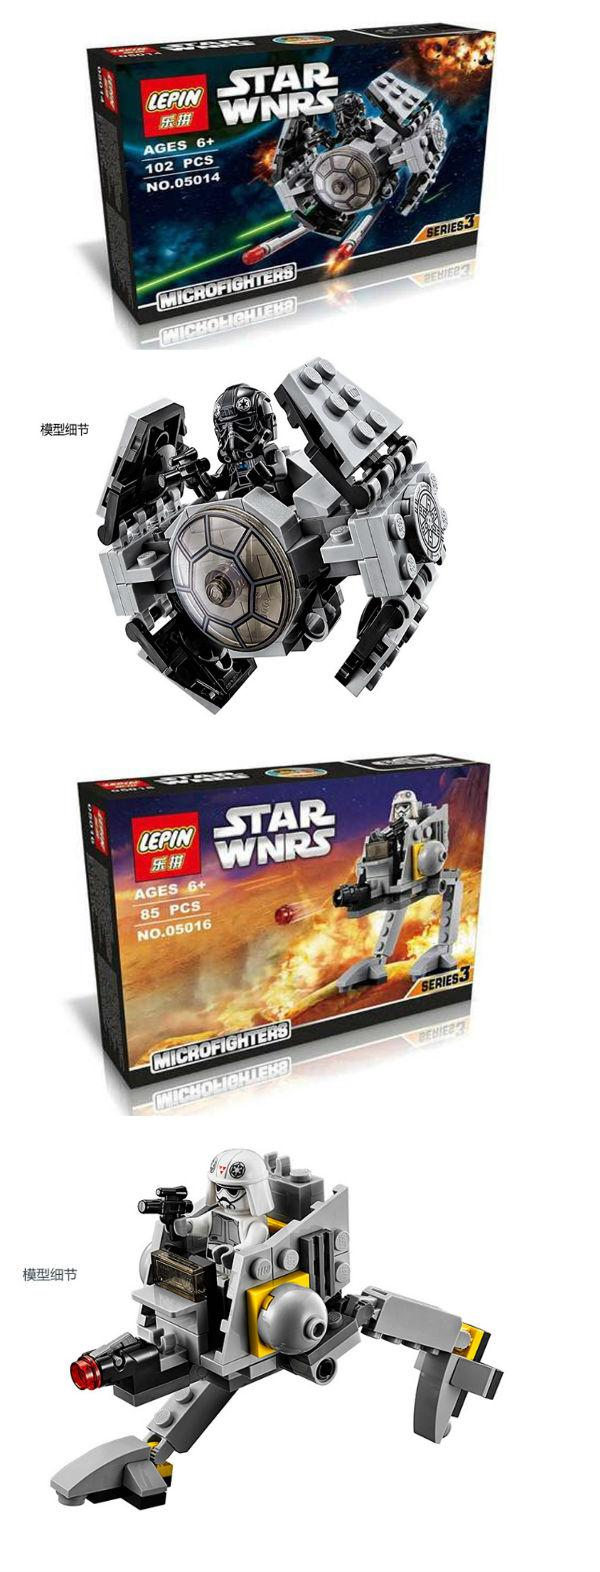 LEPIN 05011 - 05016 Star Wars Micro (end 11/22/2017 7:15 AM)